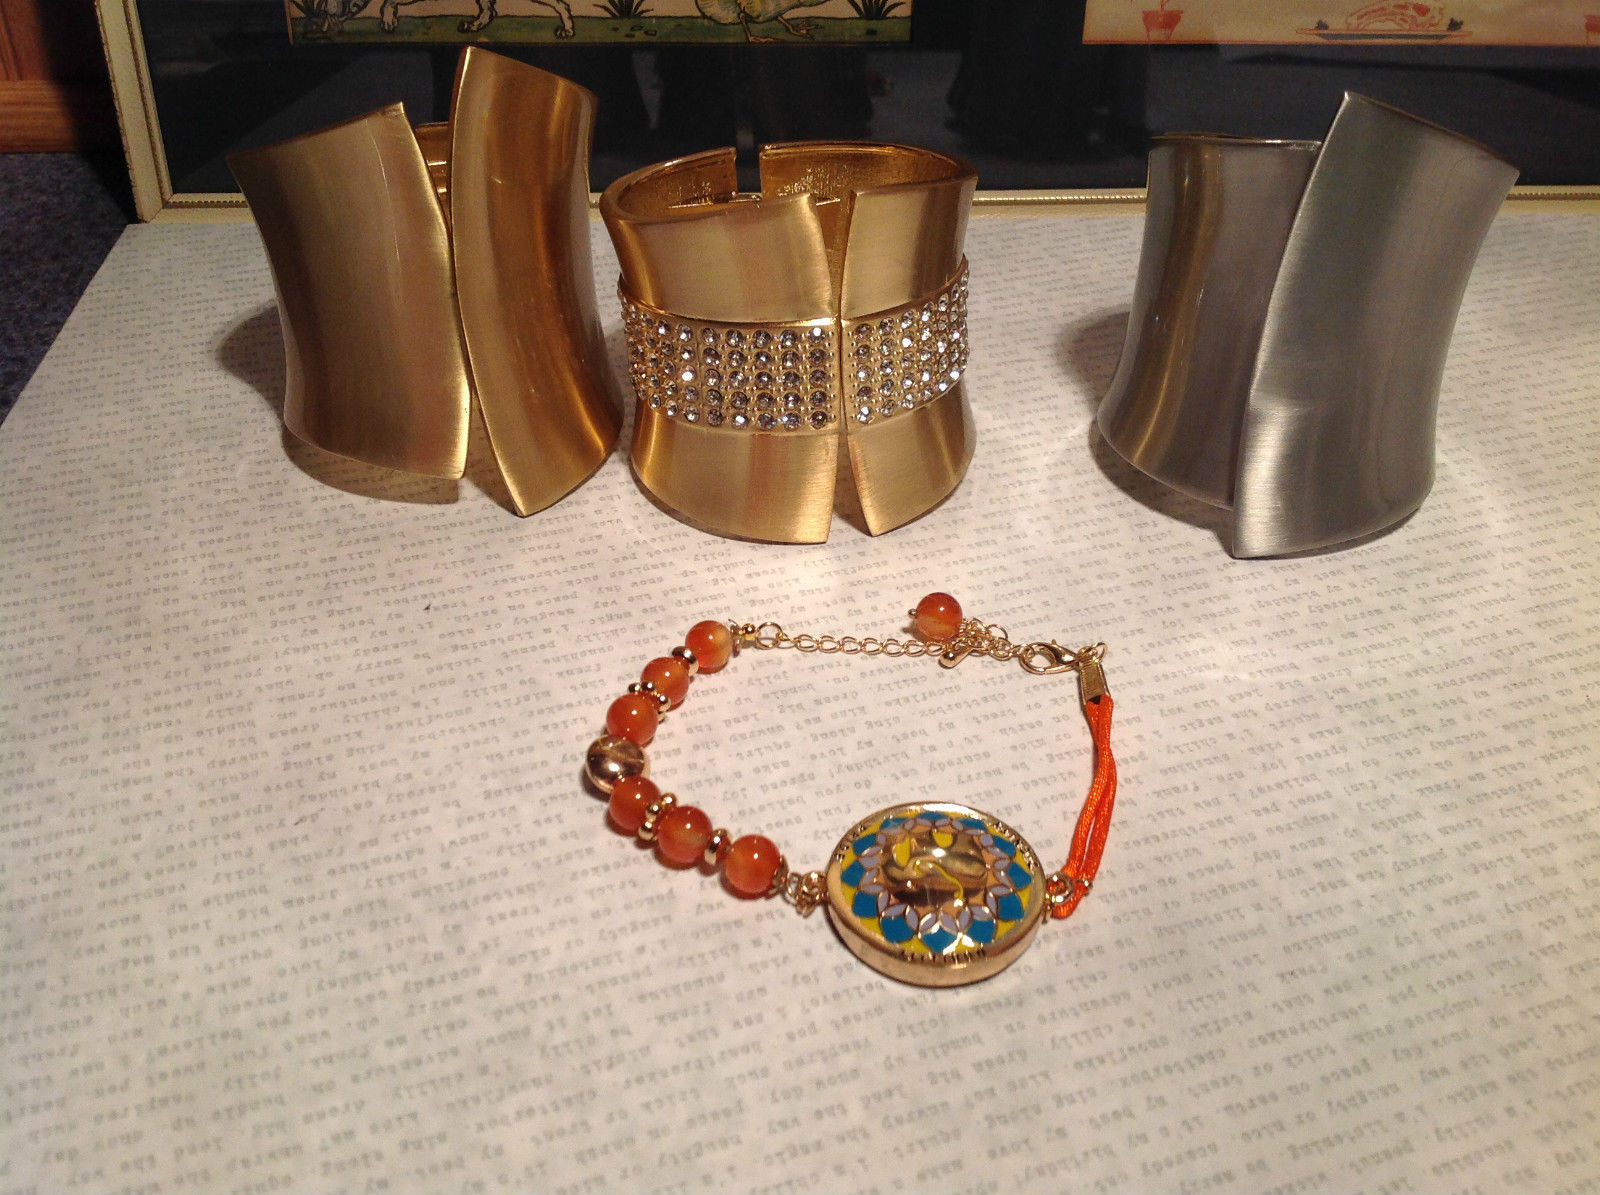 Four Piece Jewelry Lot Bracelets for Repurposing or use with flaws